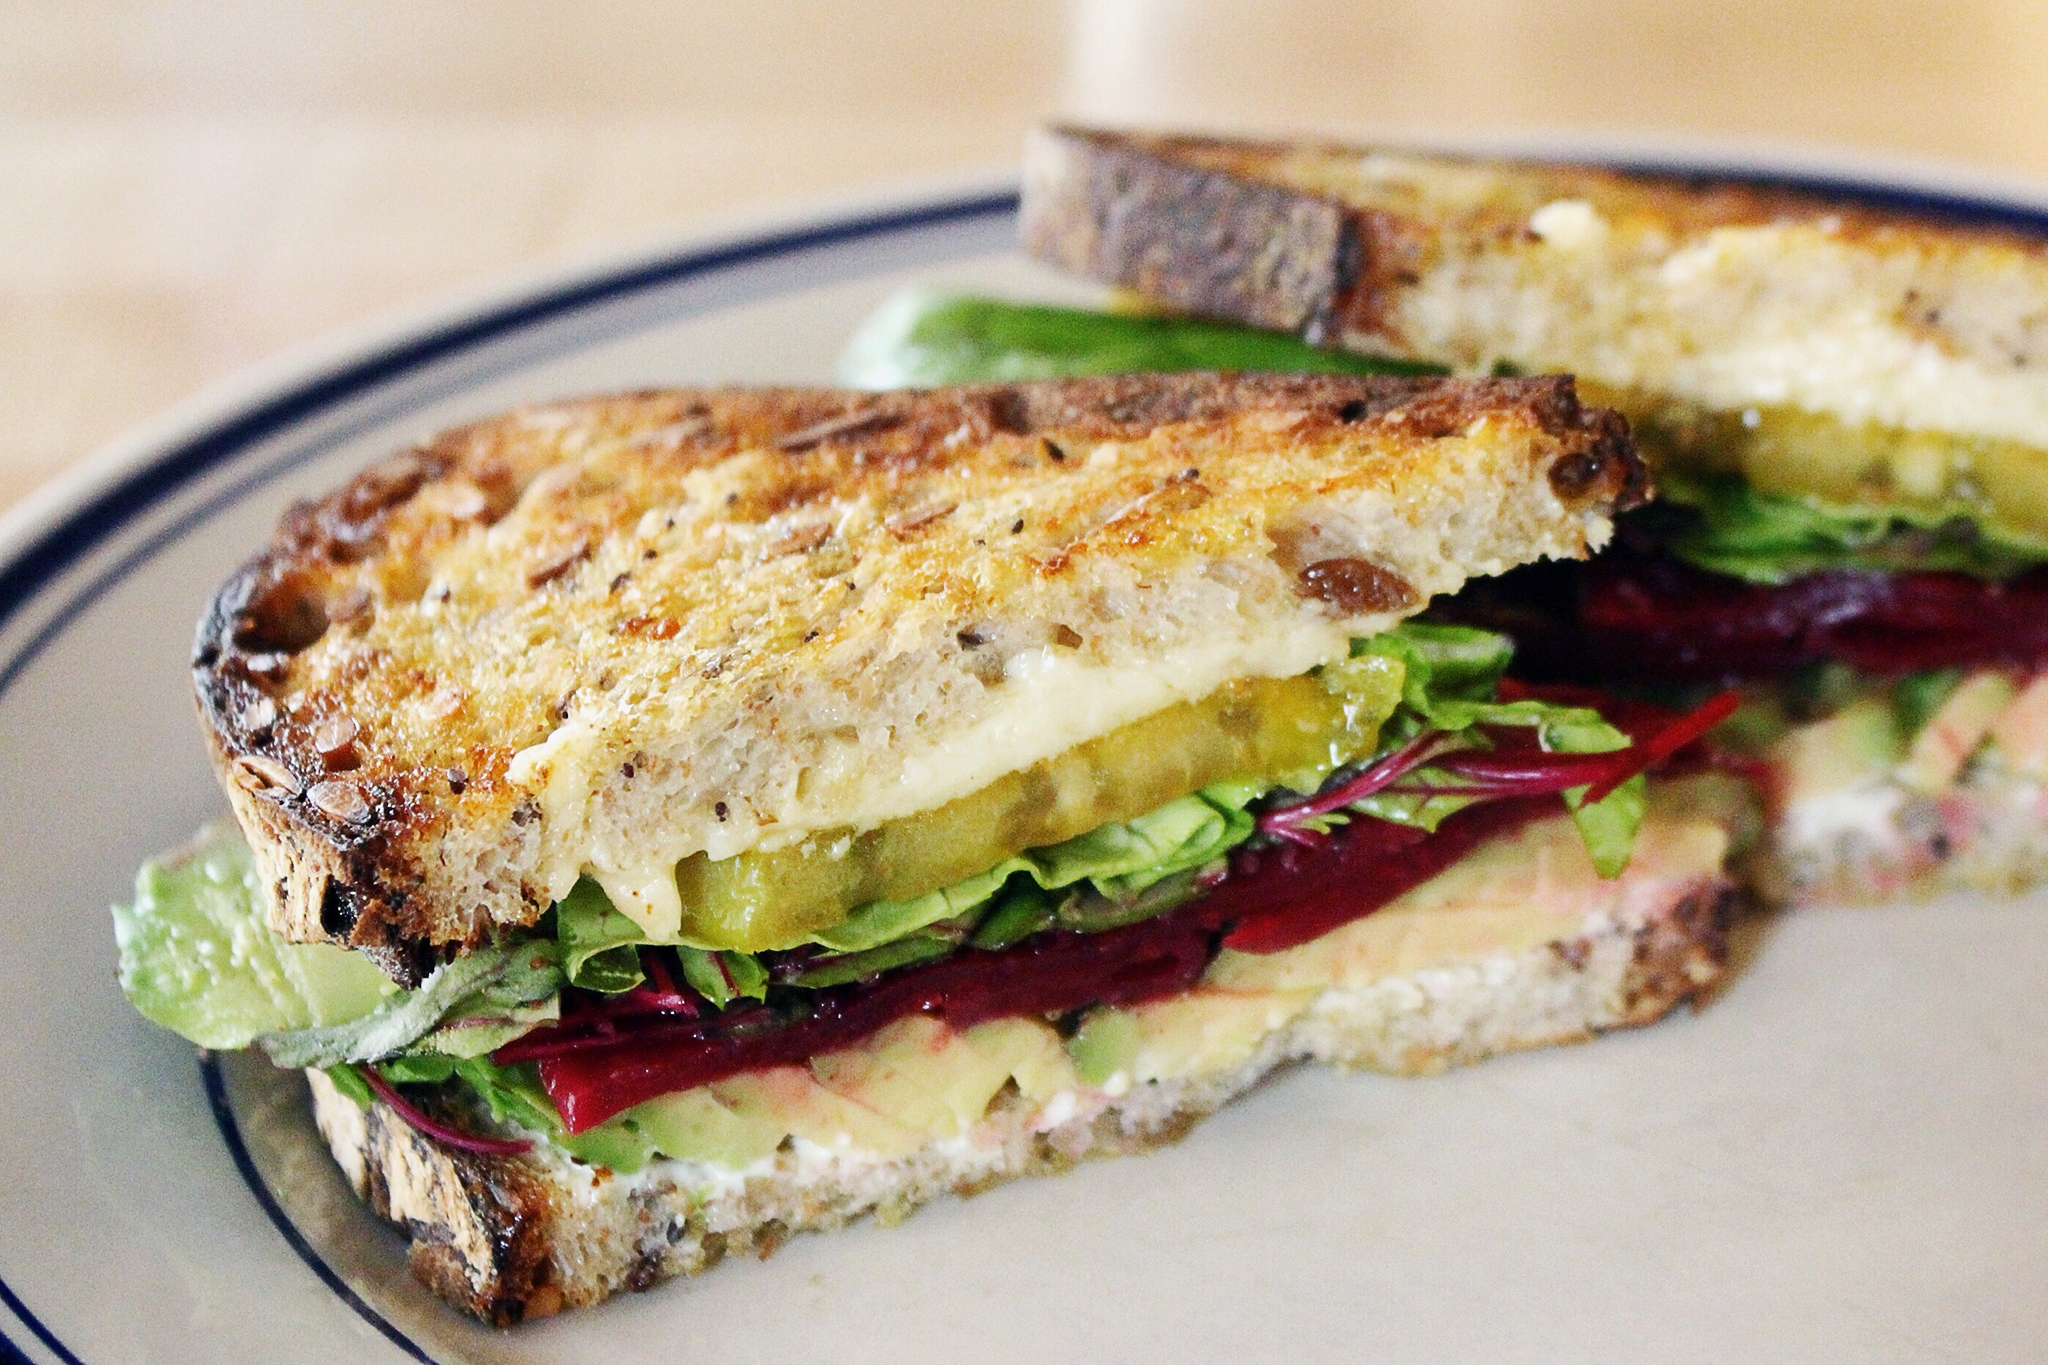 BEET L.A.T. at Publican Quality Meats We didn't expect a vegetarian sandwich to be a standout at Publican Quality Meats, but nothing should be a surprise where Paul Kahan is concerned. There are beets, of course, along with lettuce and avocado, but it's